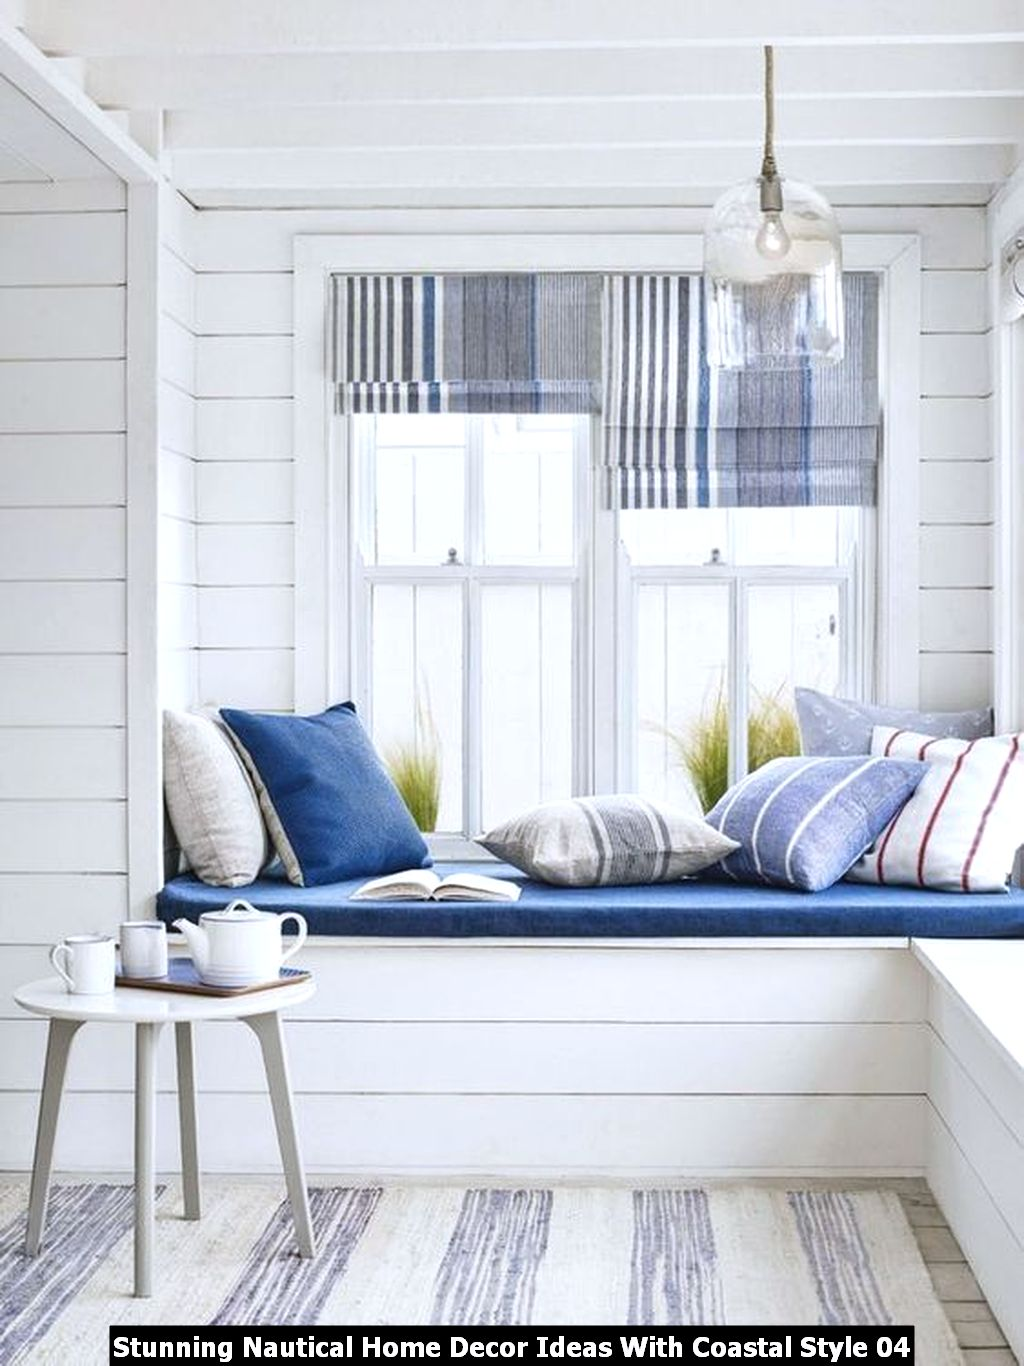 Stunning Nautical Home Decor Ideas With Coastal Style 04